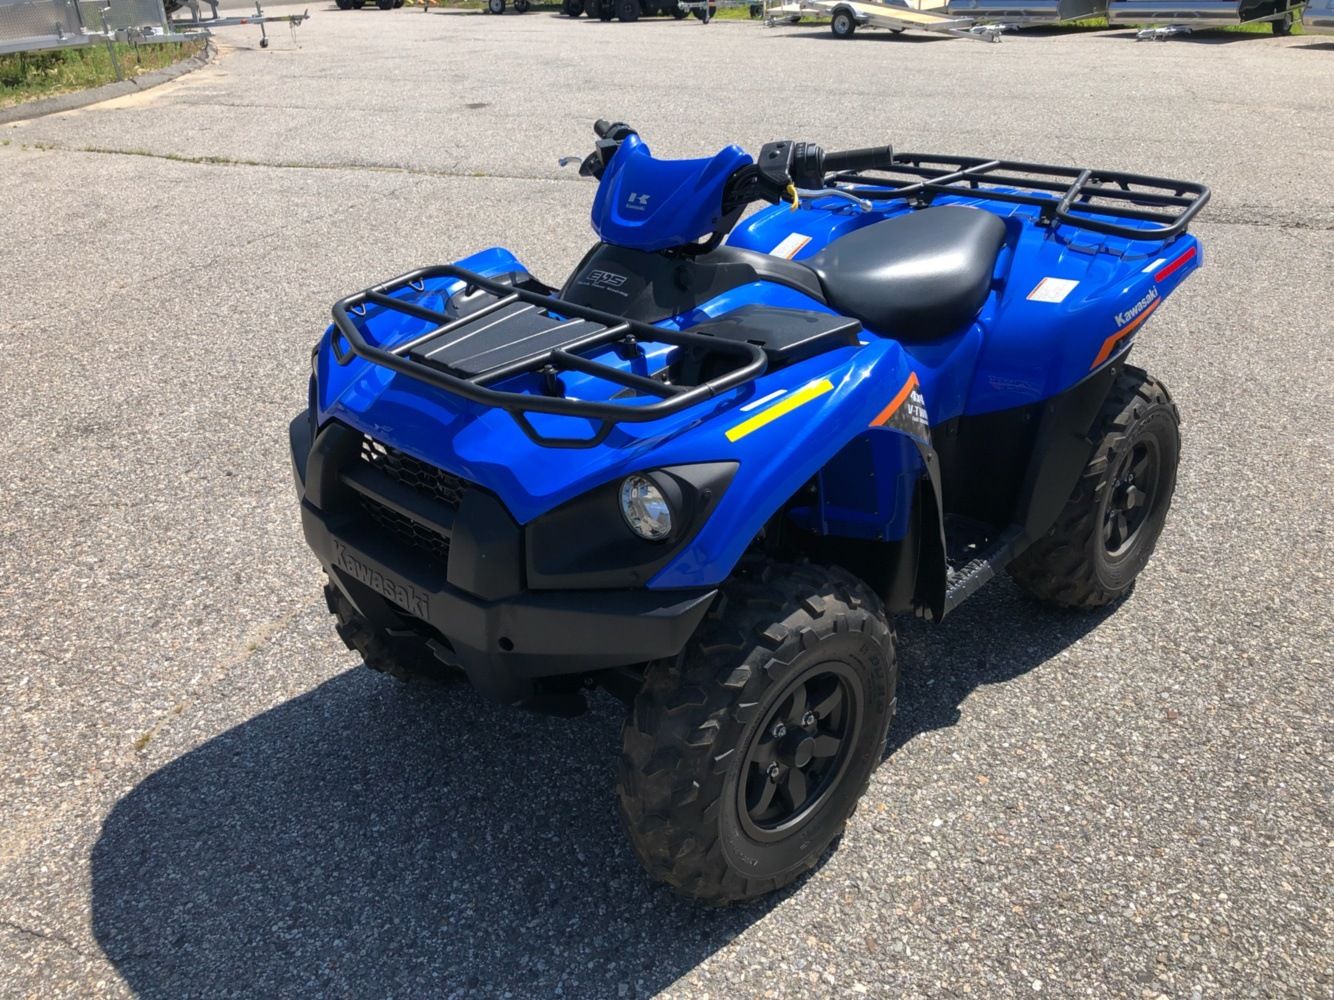 2019 Kawasaki Brute Force 750 4x4i EPS in Lebanon, Maine - Photo 5